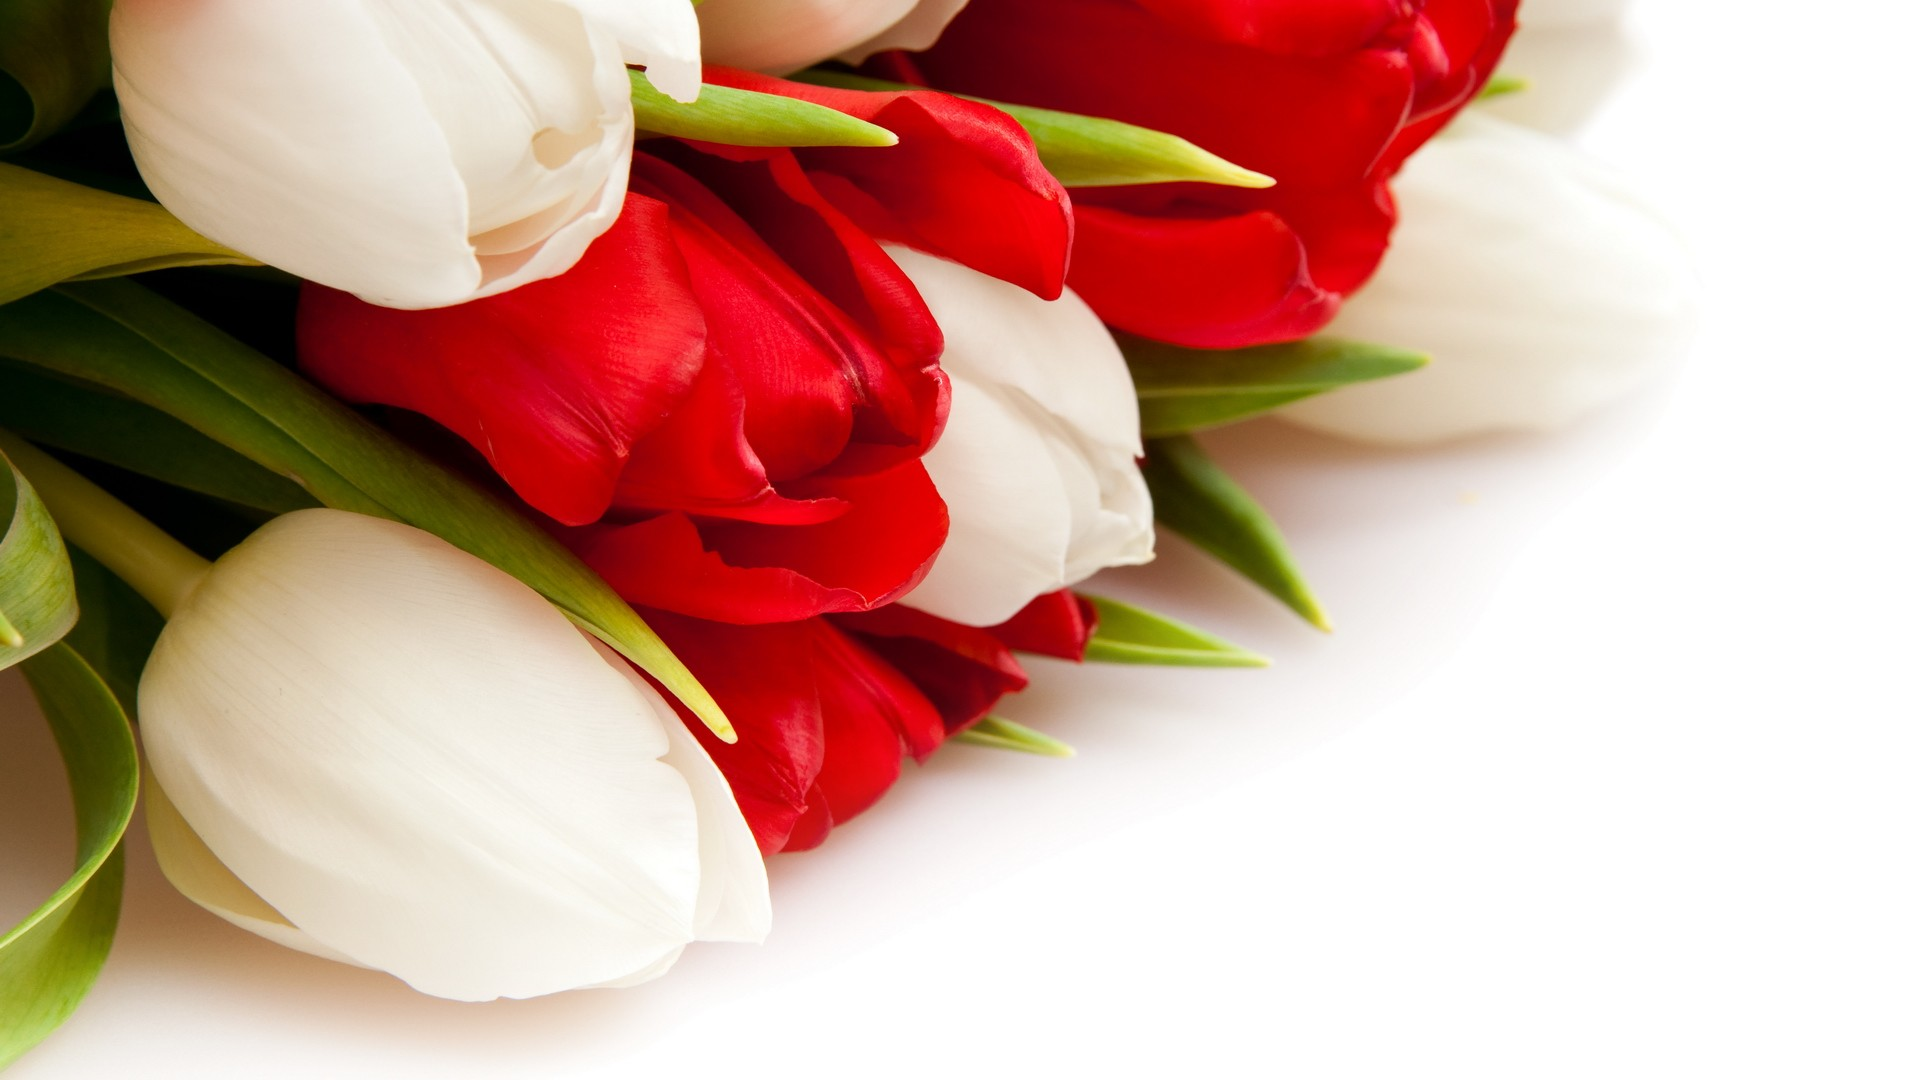 International Women's Day Flowers download image